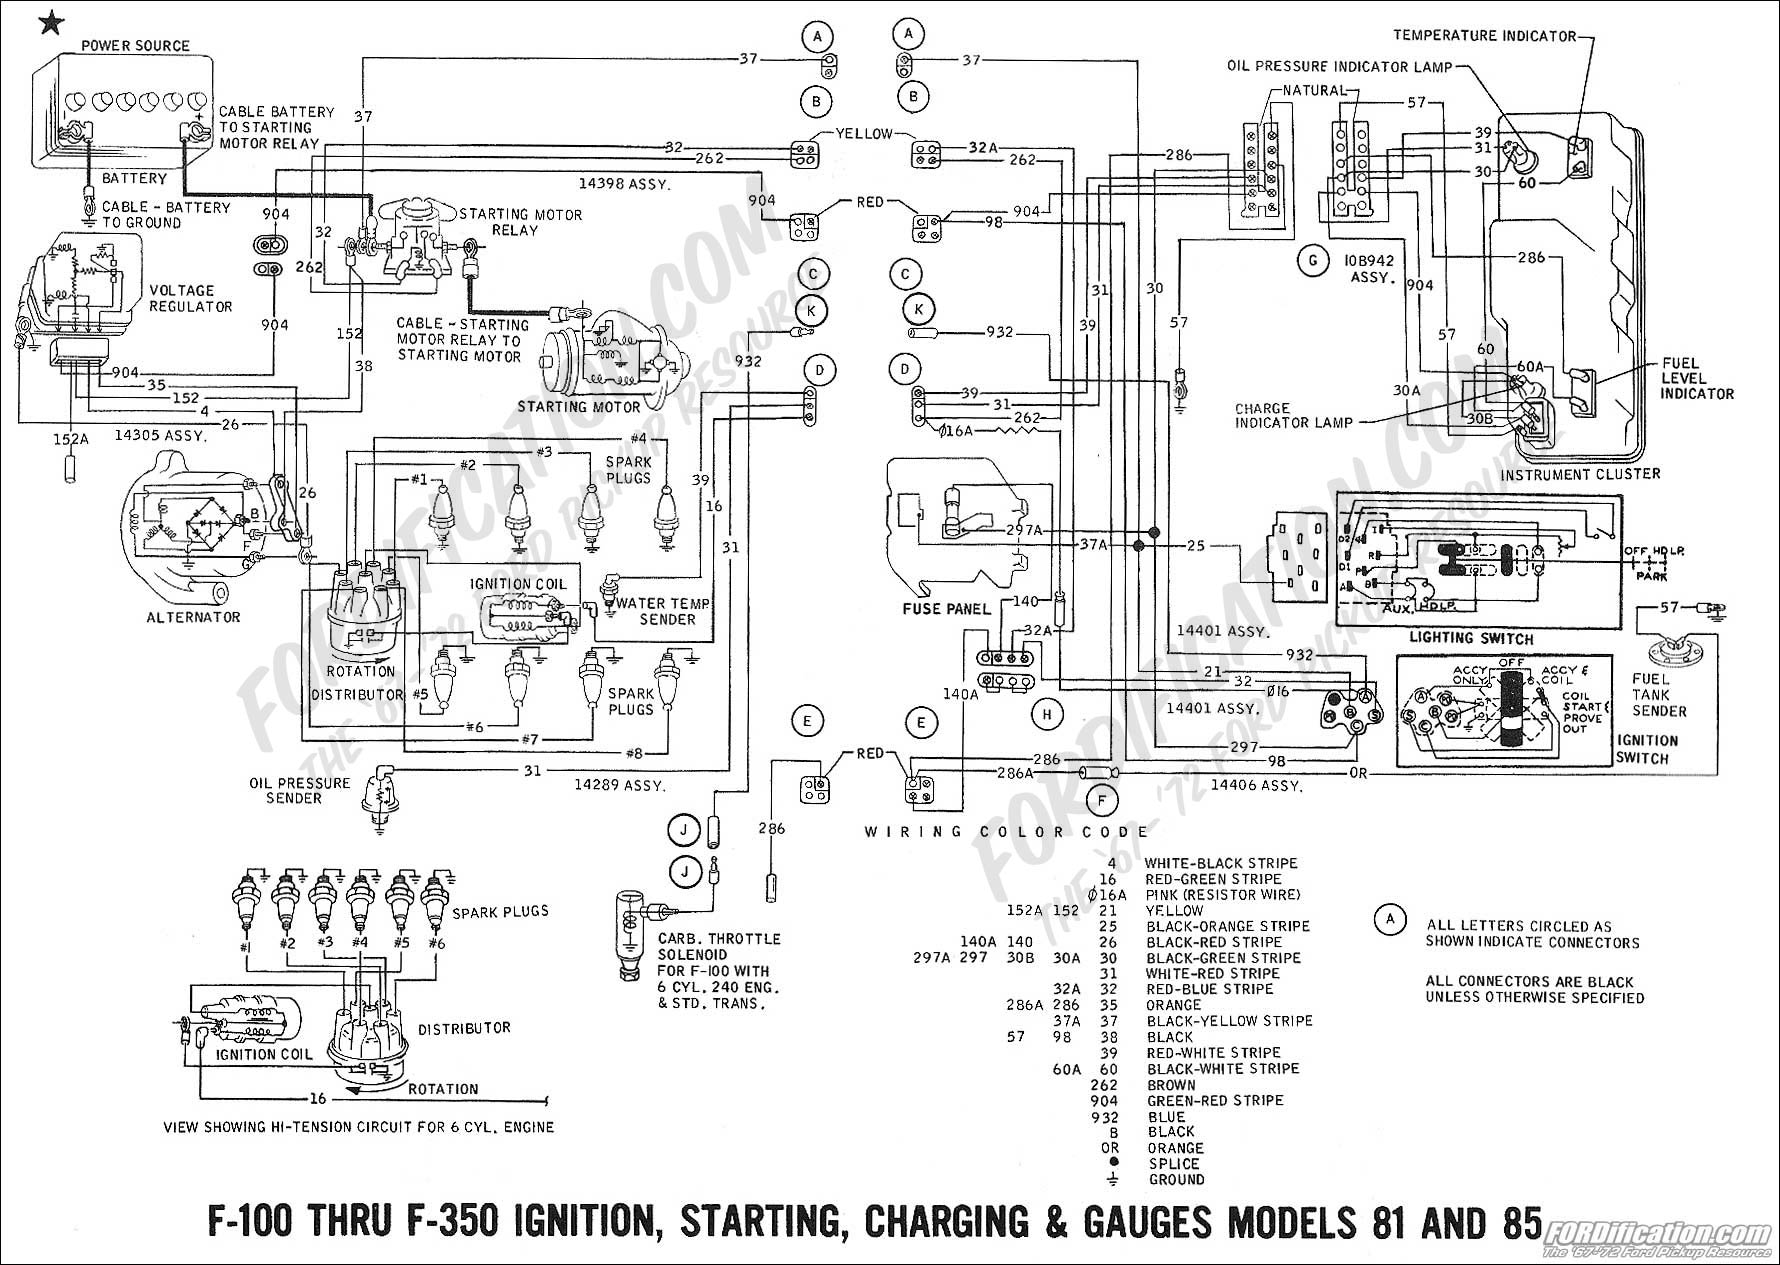 1968 ford wiring diagram tail lights wiring diagram 2019ford truck technical drawings and schematics section h wiring 1968 ford wiring diagram